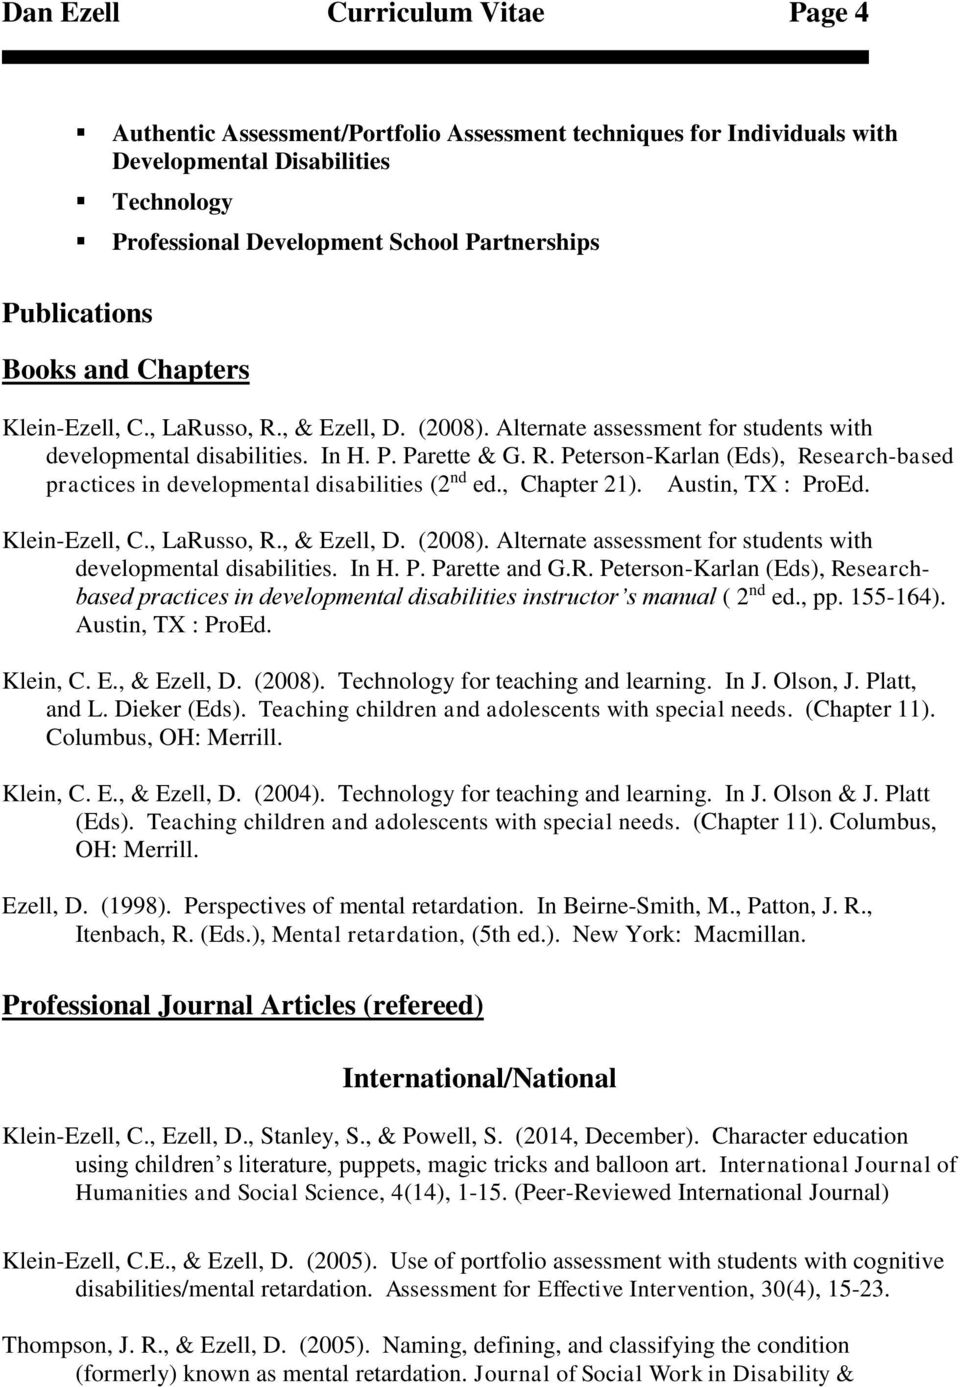 , Chapter 21). Austin, TX : ProEd. Klein-Ezell, C., LaRusso, R., & Ezell, D. (2008). Alternate assessment for students with developmental disabilities. In H. P. Parette and G.R. Peterson-Karlan (Eds), Researchbased practices in developmental disabilities instructor s manual ( 2 nd ed.